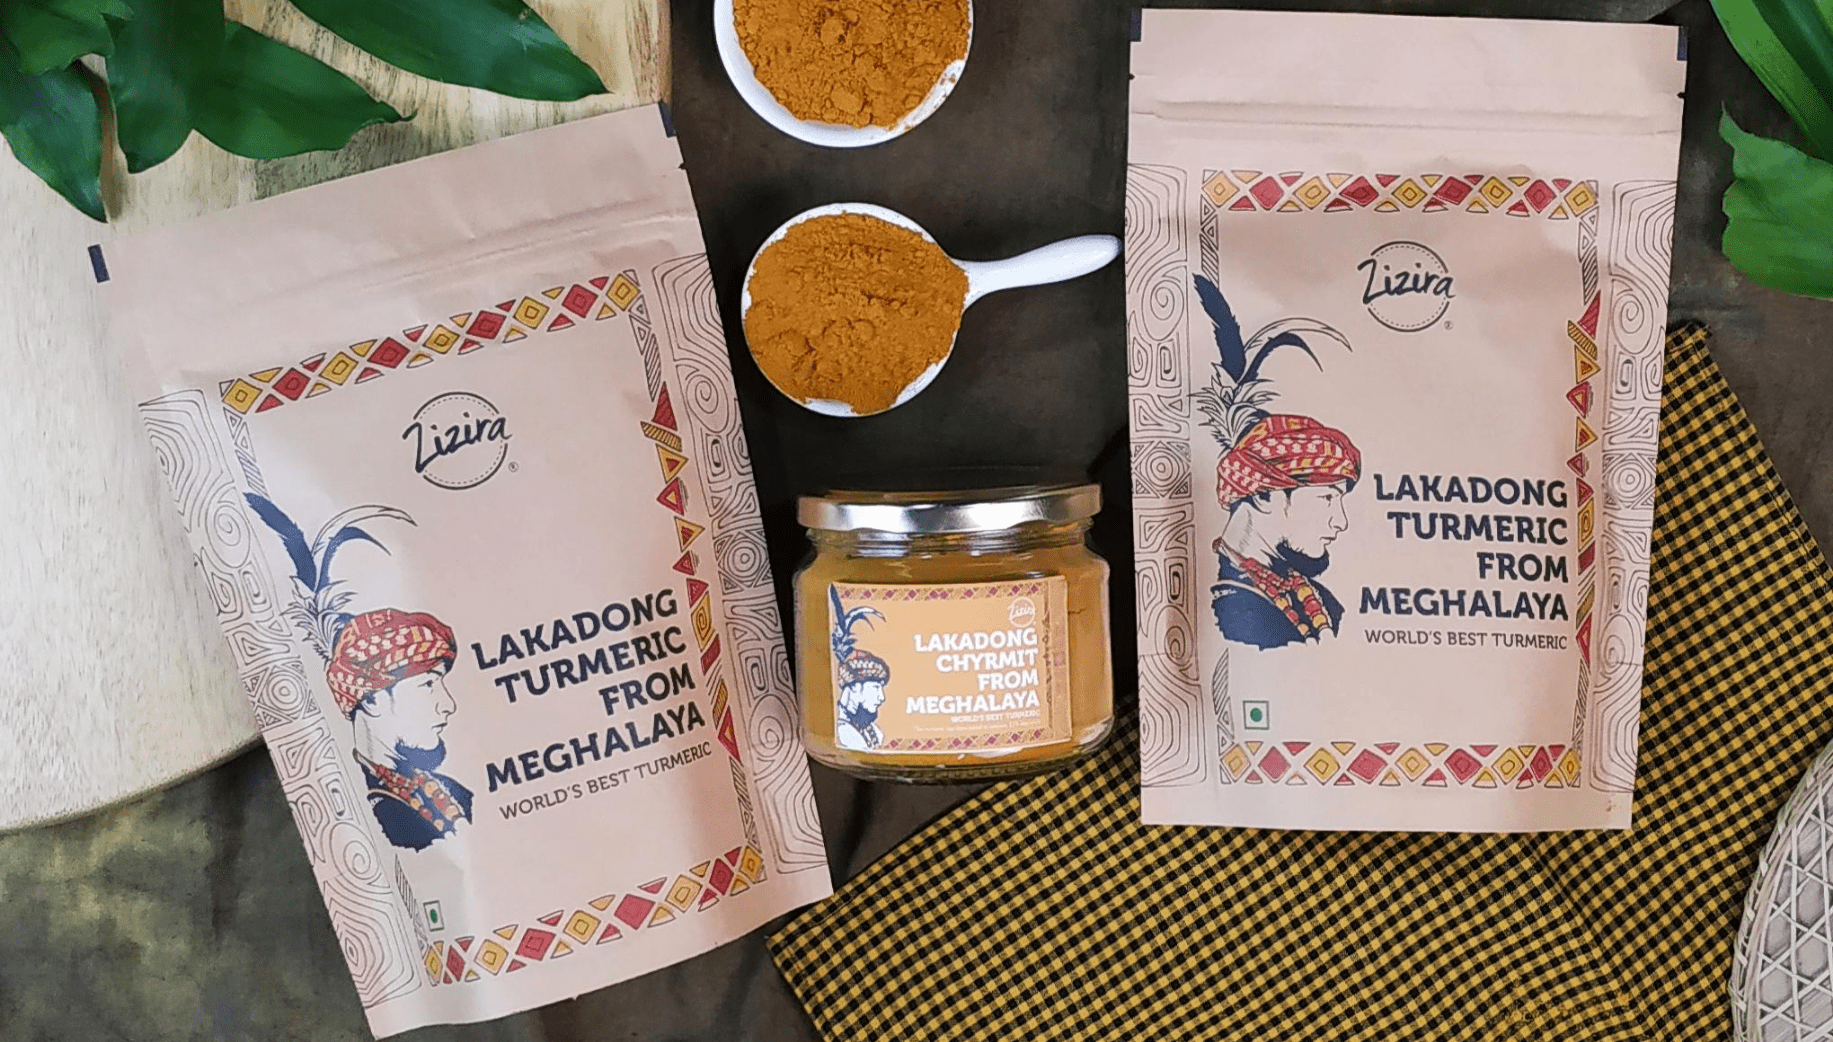 Lakadong turmeric from Meghalaya has been used to aid medical treatment